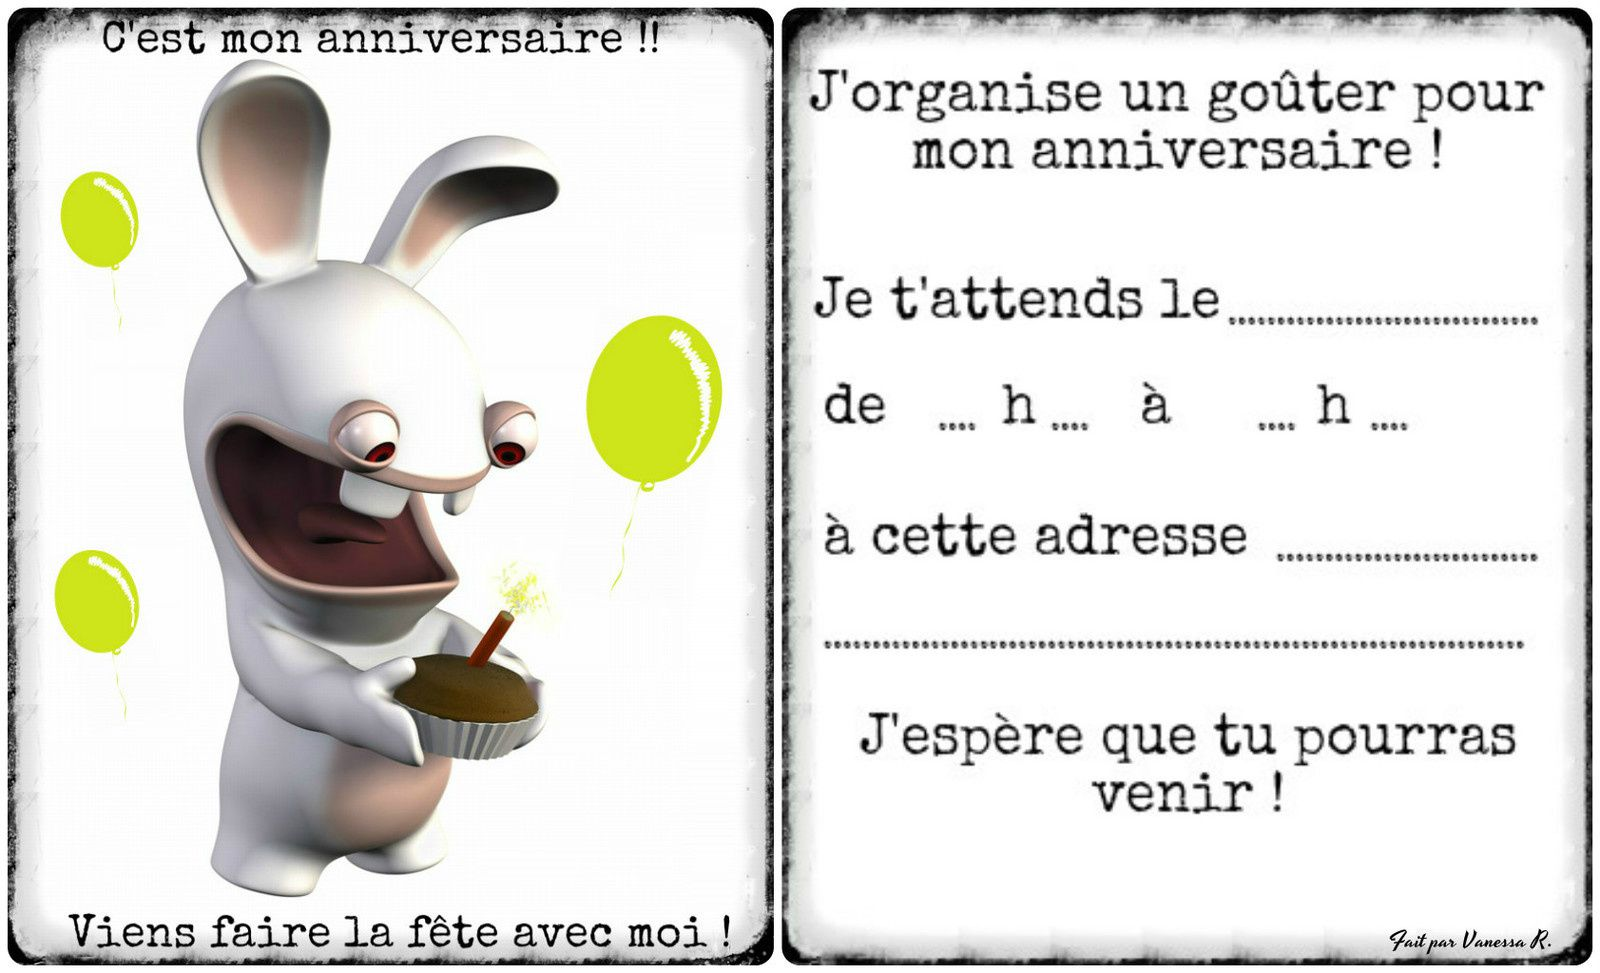 invitation anniversaire lapins cr tins gratuite dans la. Black Bedroom Furniture Sets. Home Design Ideas